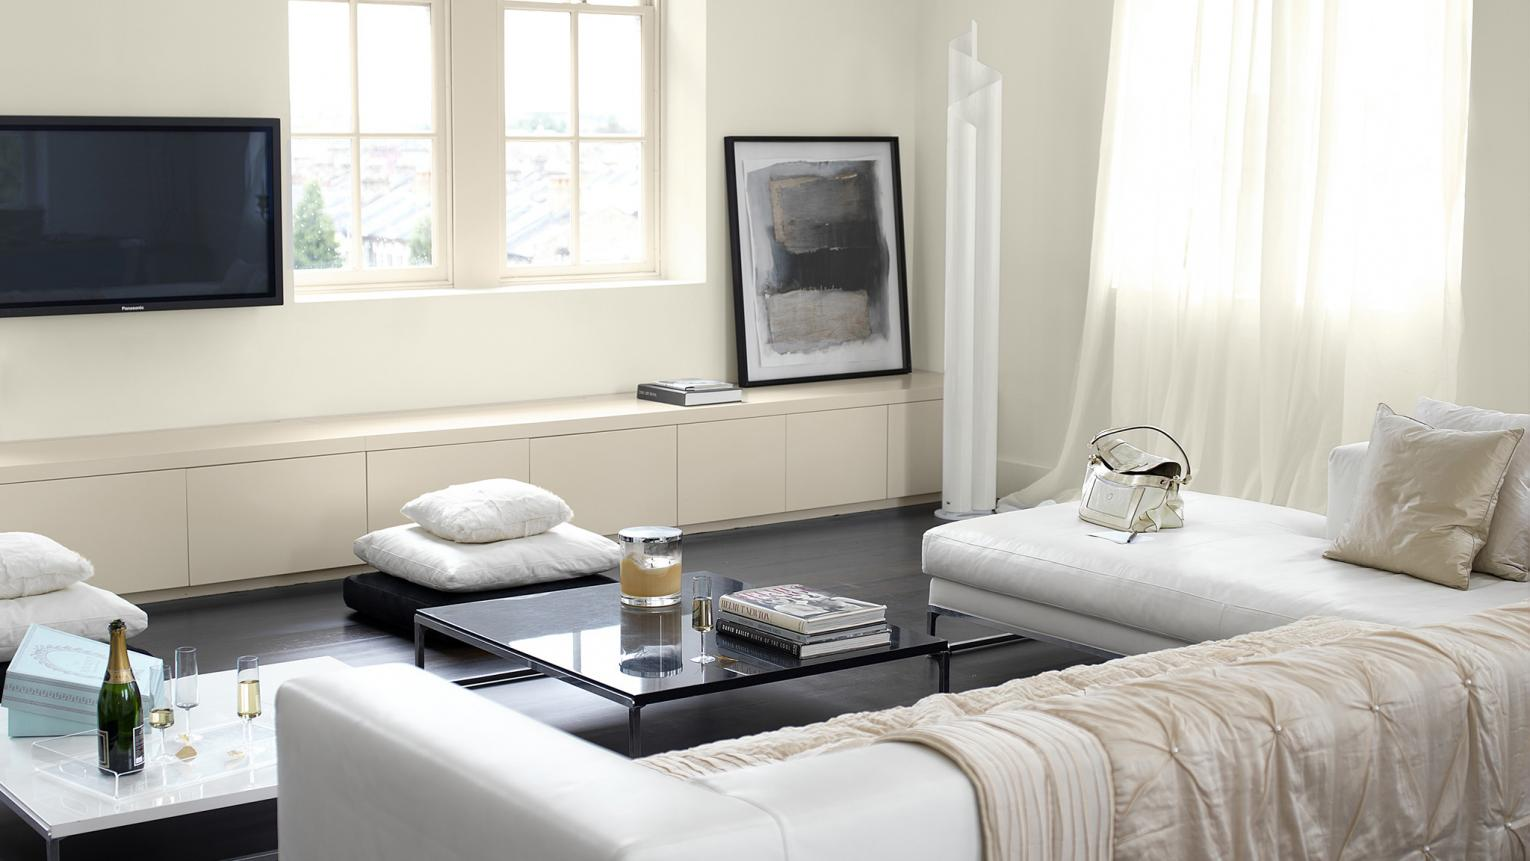 Using different textures in a neutral room creates sophisticated depth.